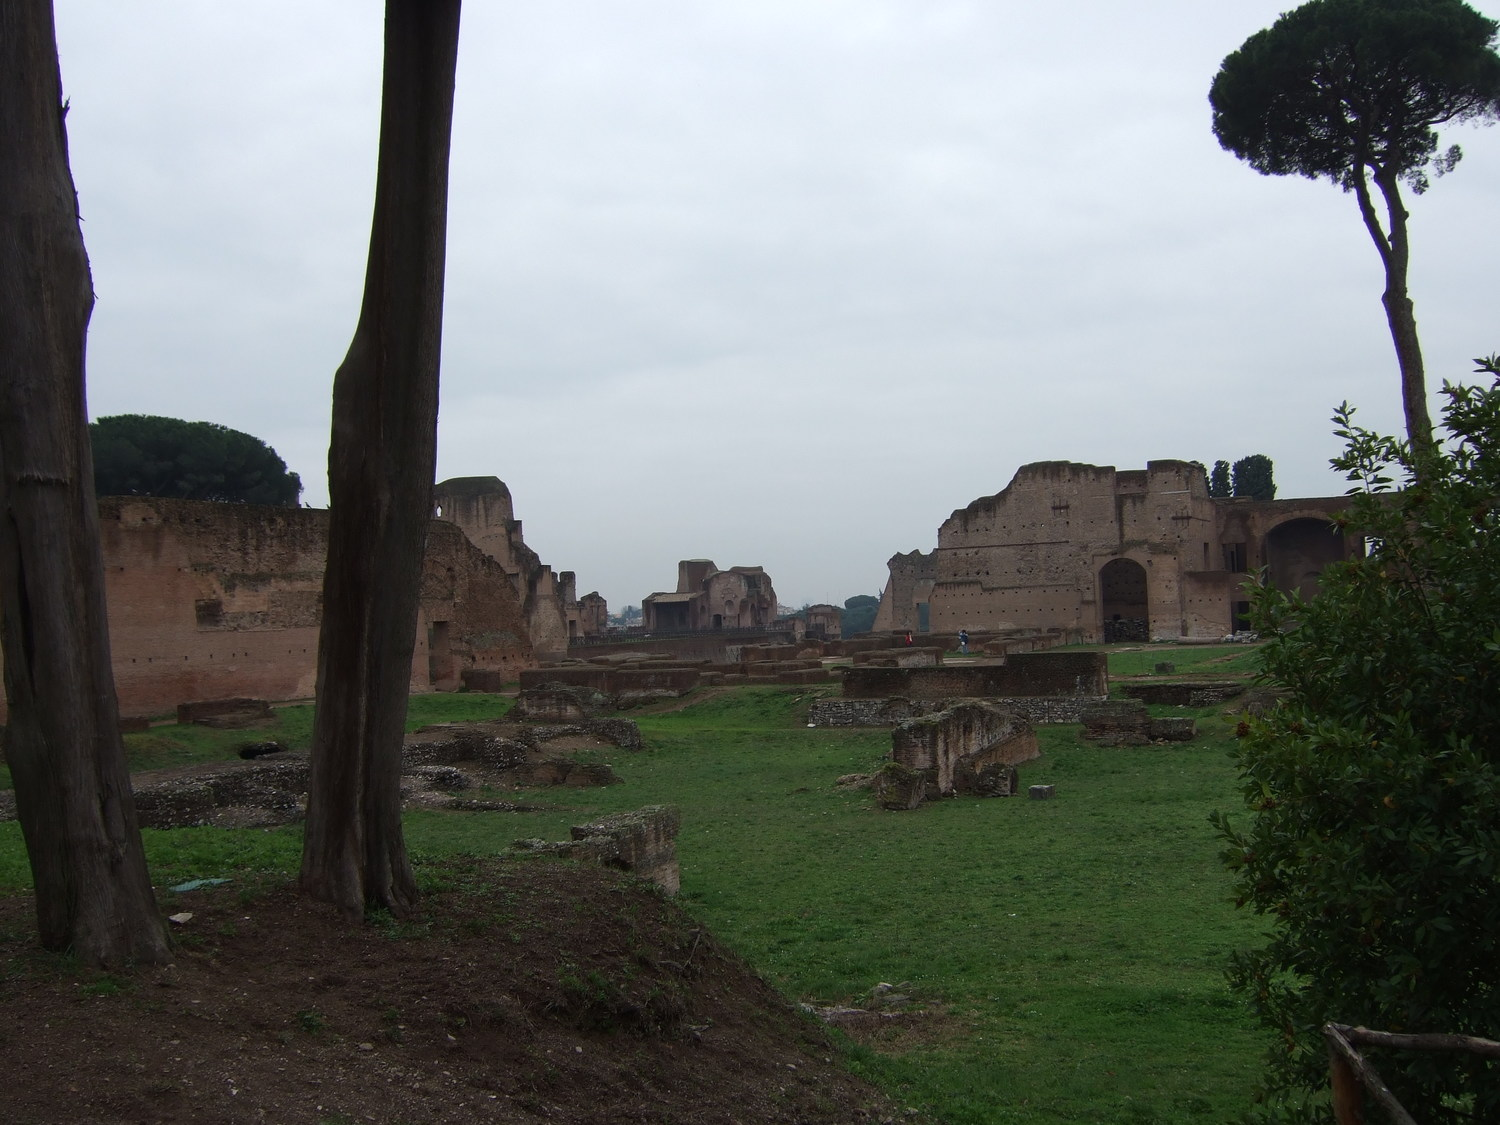 Trip to Rome. The ruins of the palaces on Palatine Hill